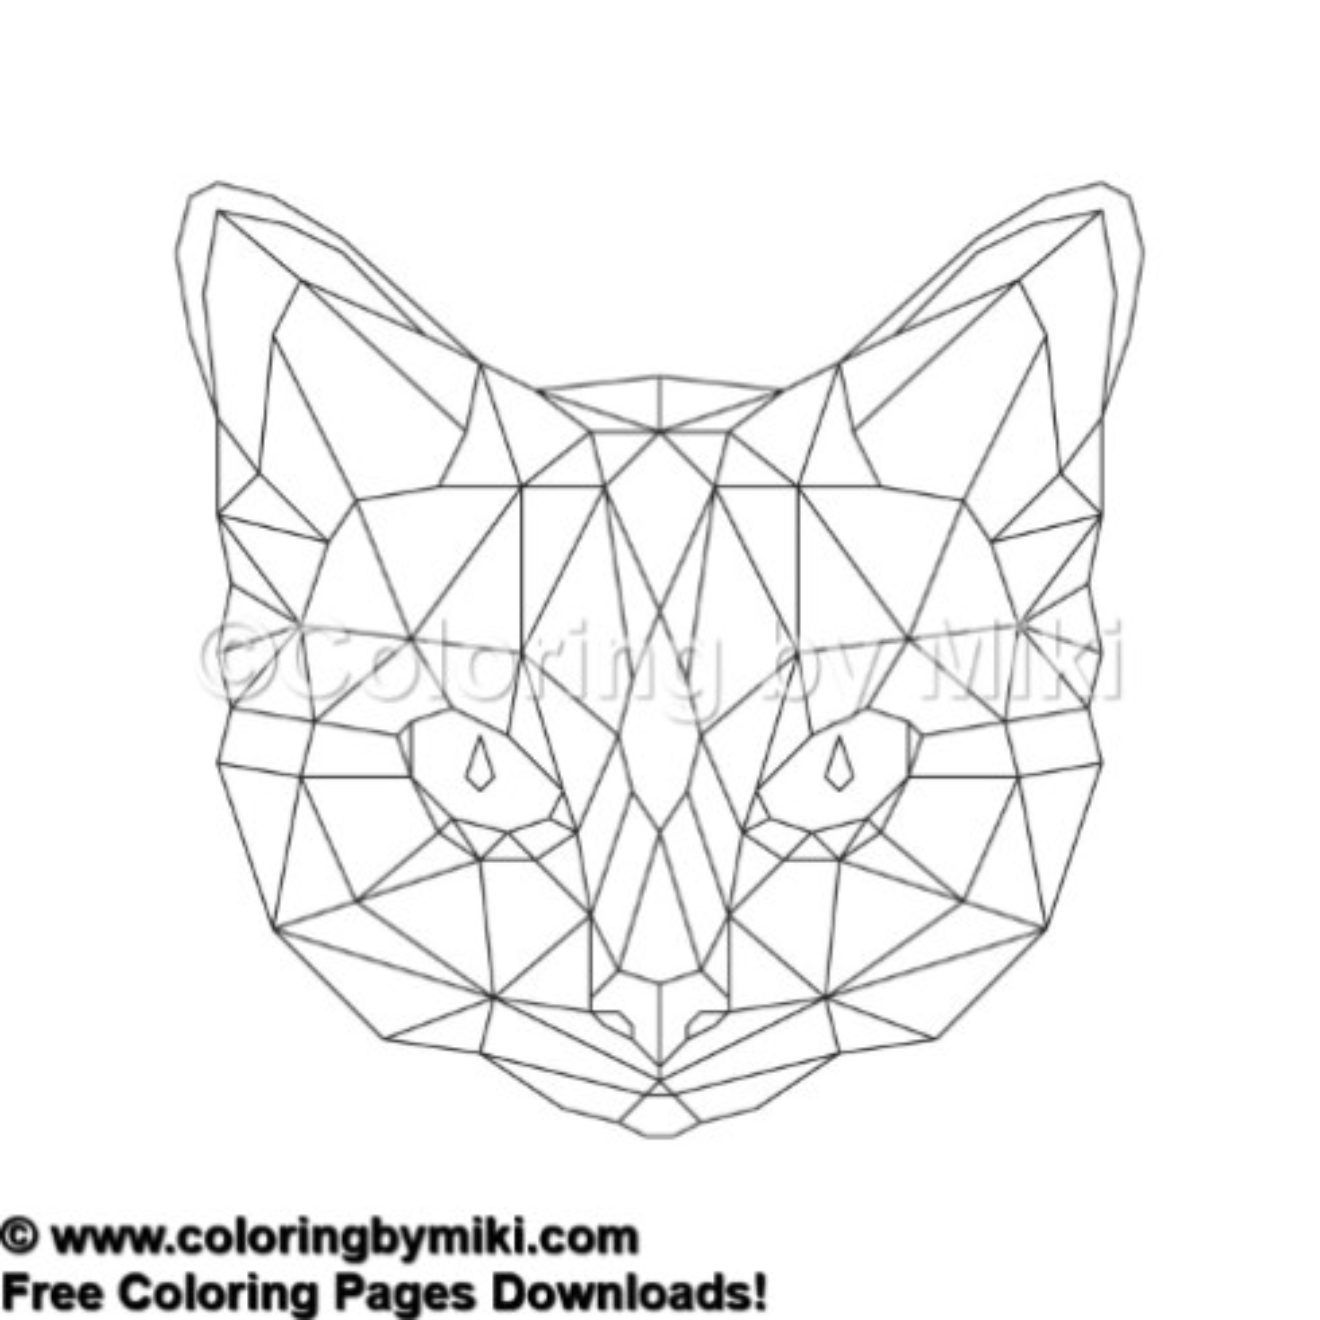 Geometric Cat Coloring Page 722 ぬり絵 コロリアージュ 塗り絵